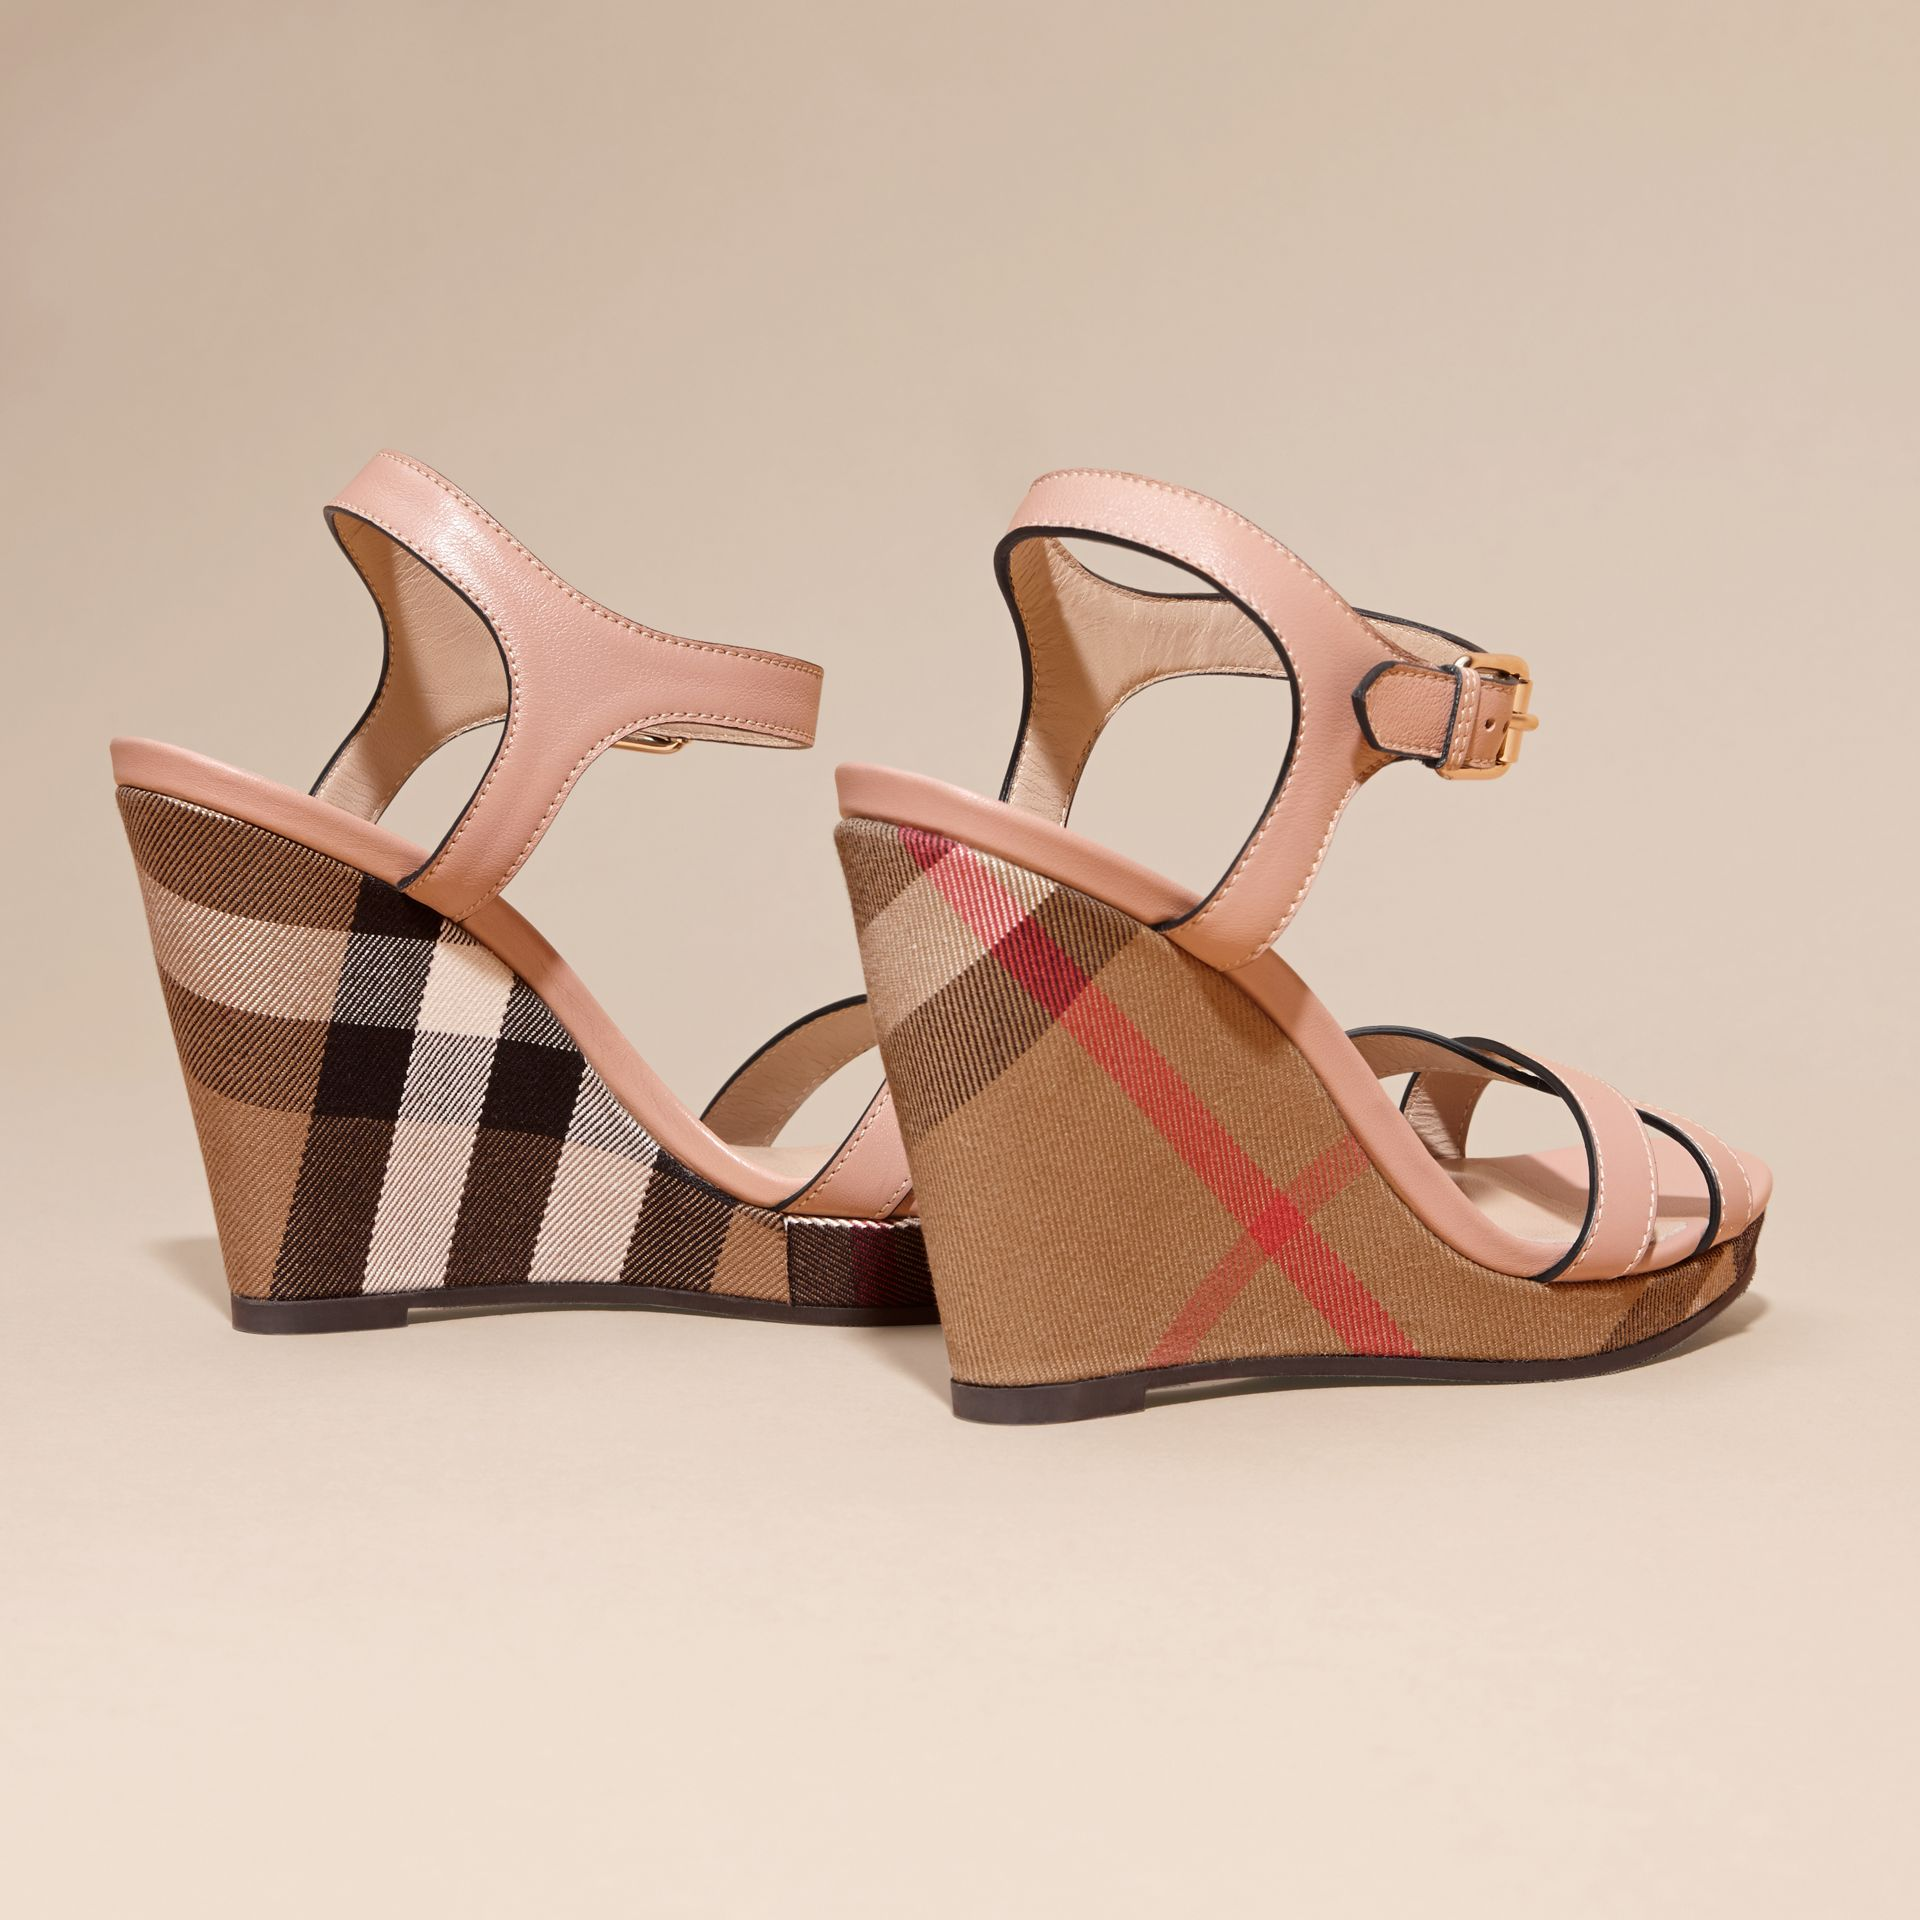 House Check Detail Leather Wedge Sandals in Nude Blush - Women | Burberry - gallery image 4